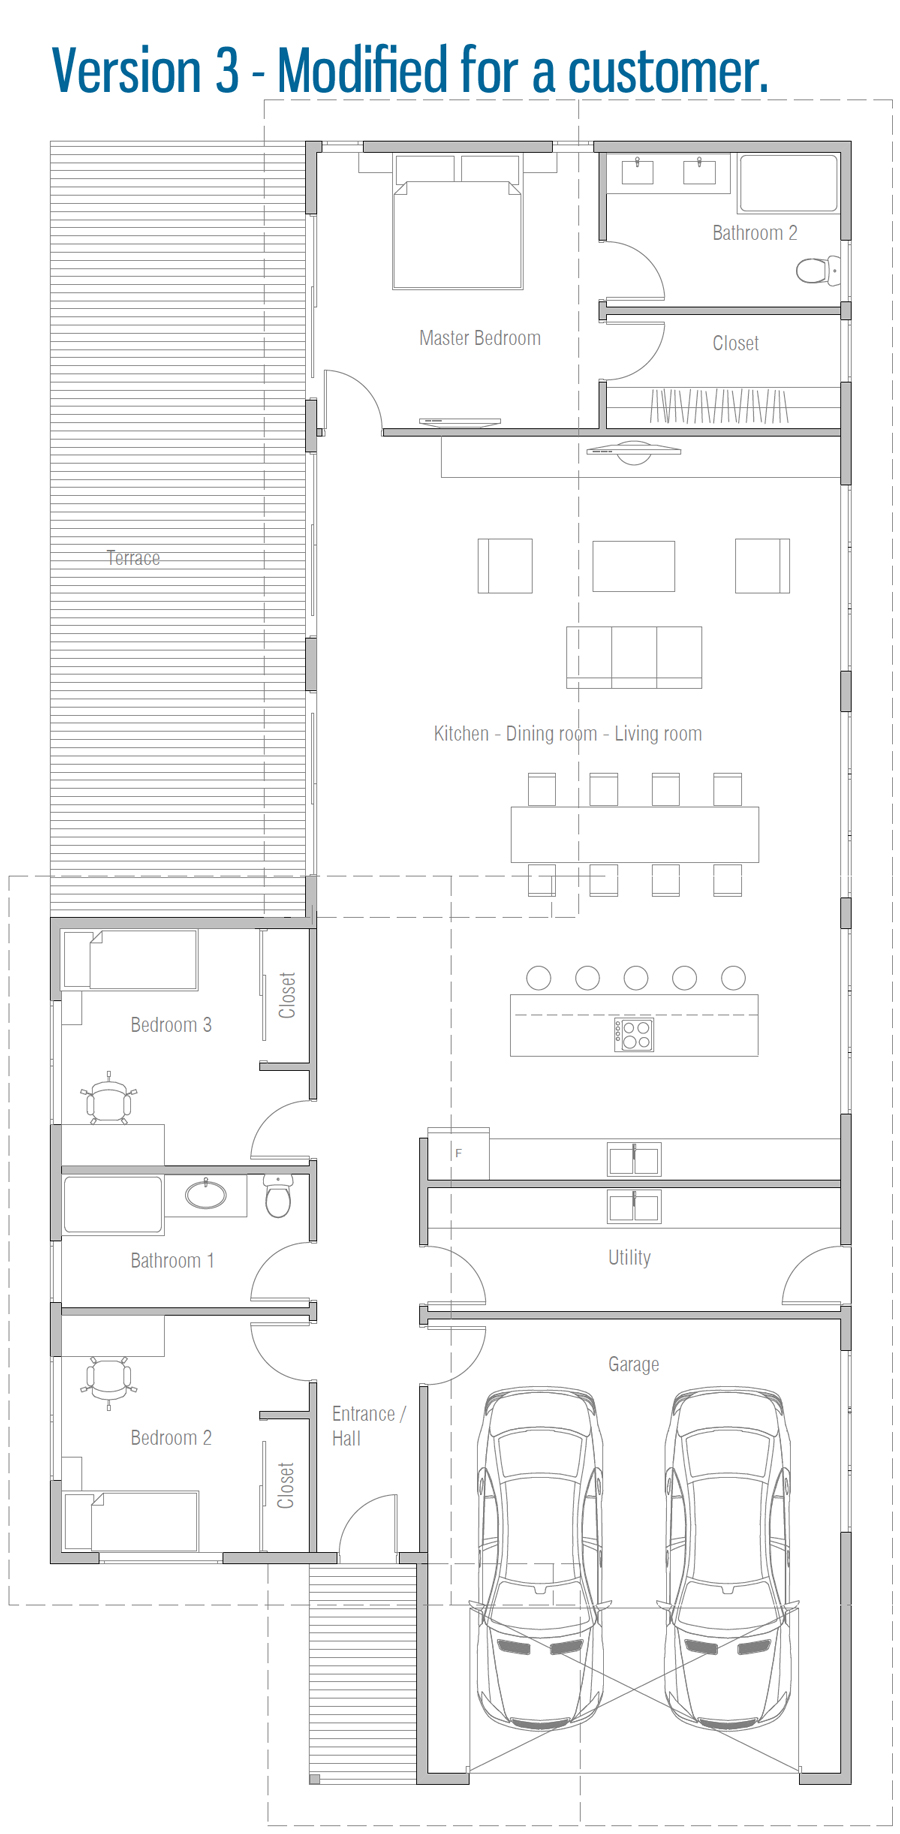 house-plans-2019_40_home_plan_CH603_V3.jpg